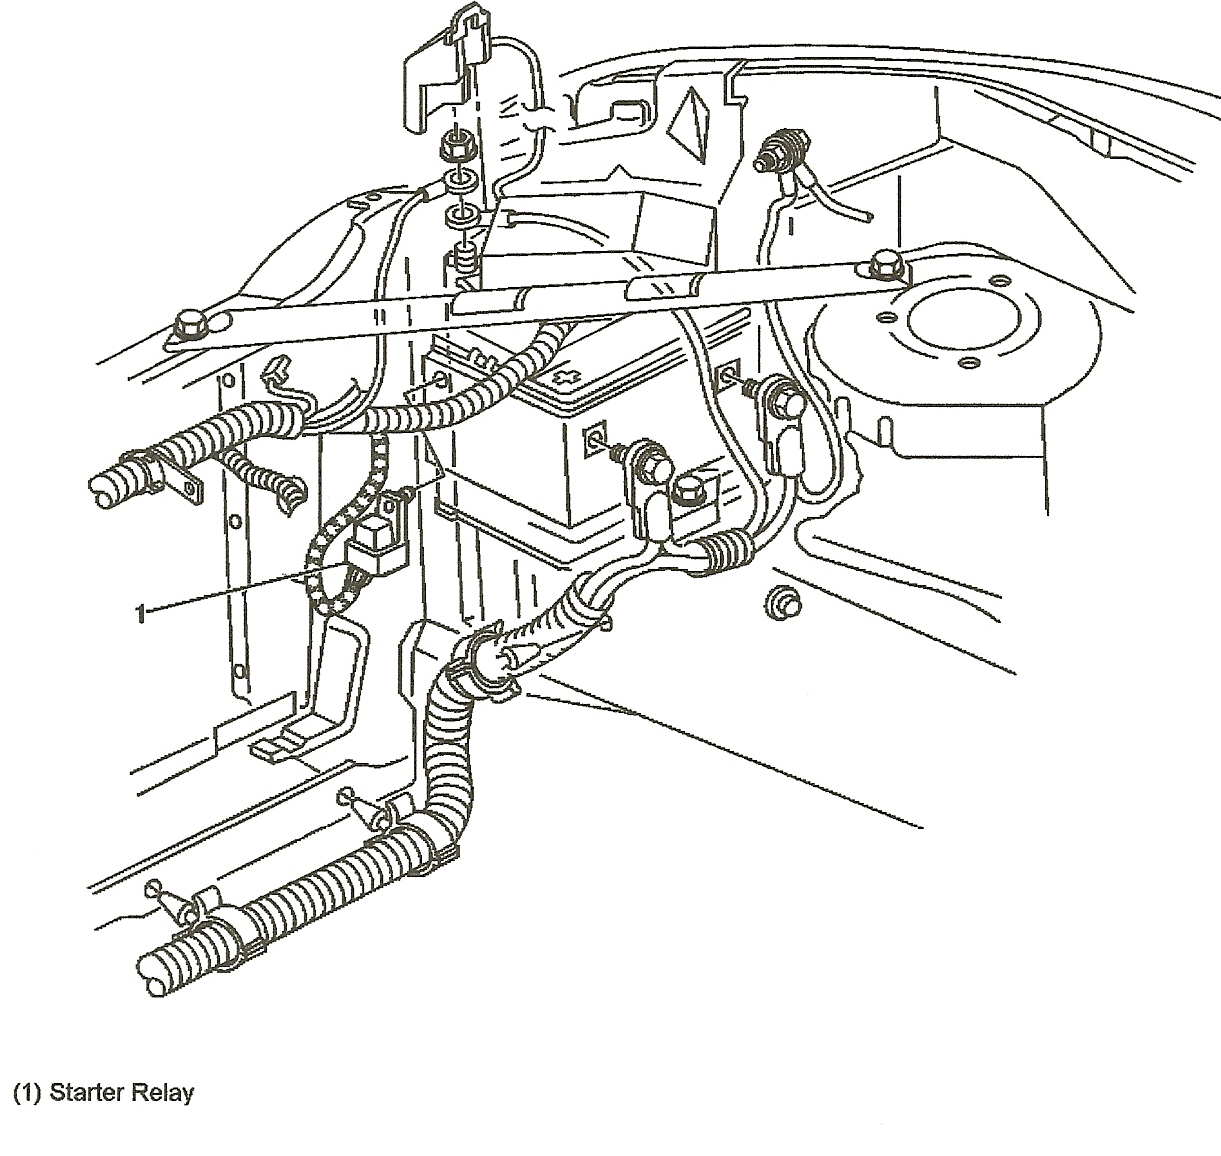 2002 Oldsmobile Bravada Fuse Box Location Wiring Library 2000 Diagram Ford Explorer Starter Solenoid